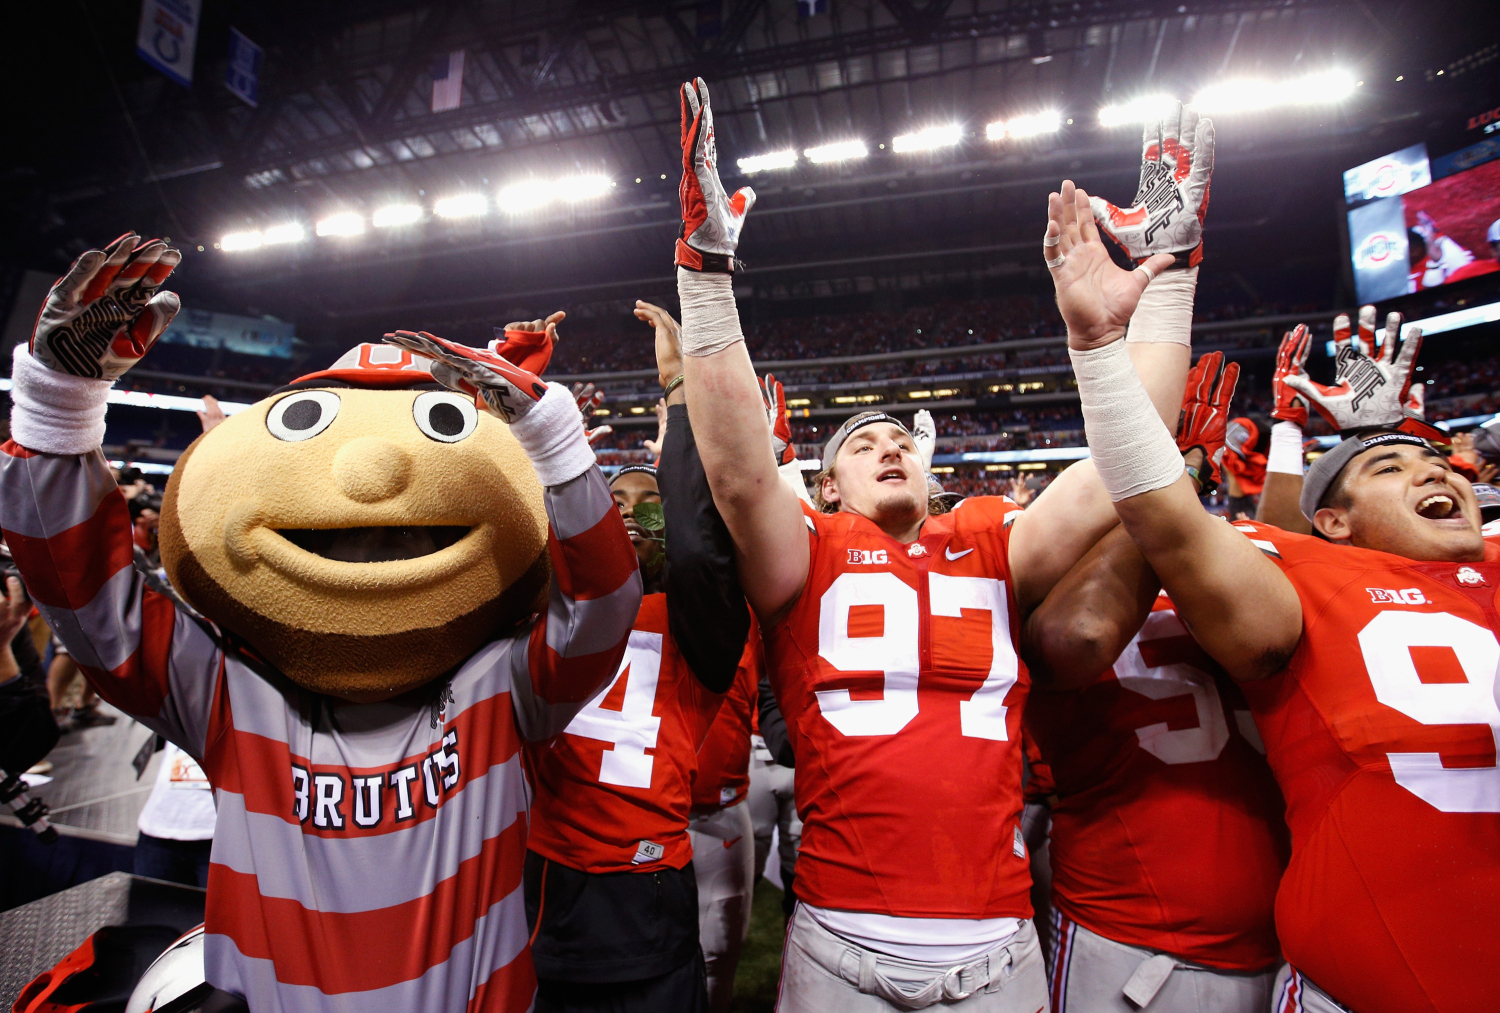 The Ohio State Buckeyes have one of the most dominant college football programs in the country. So, why are they called the Buckeyes?